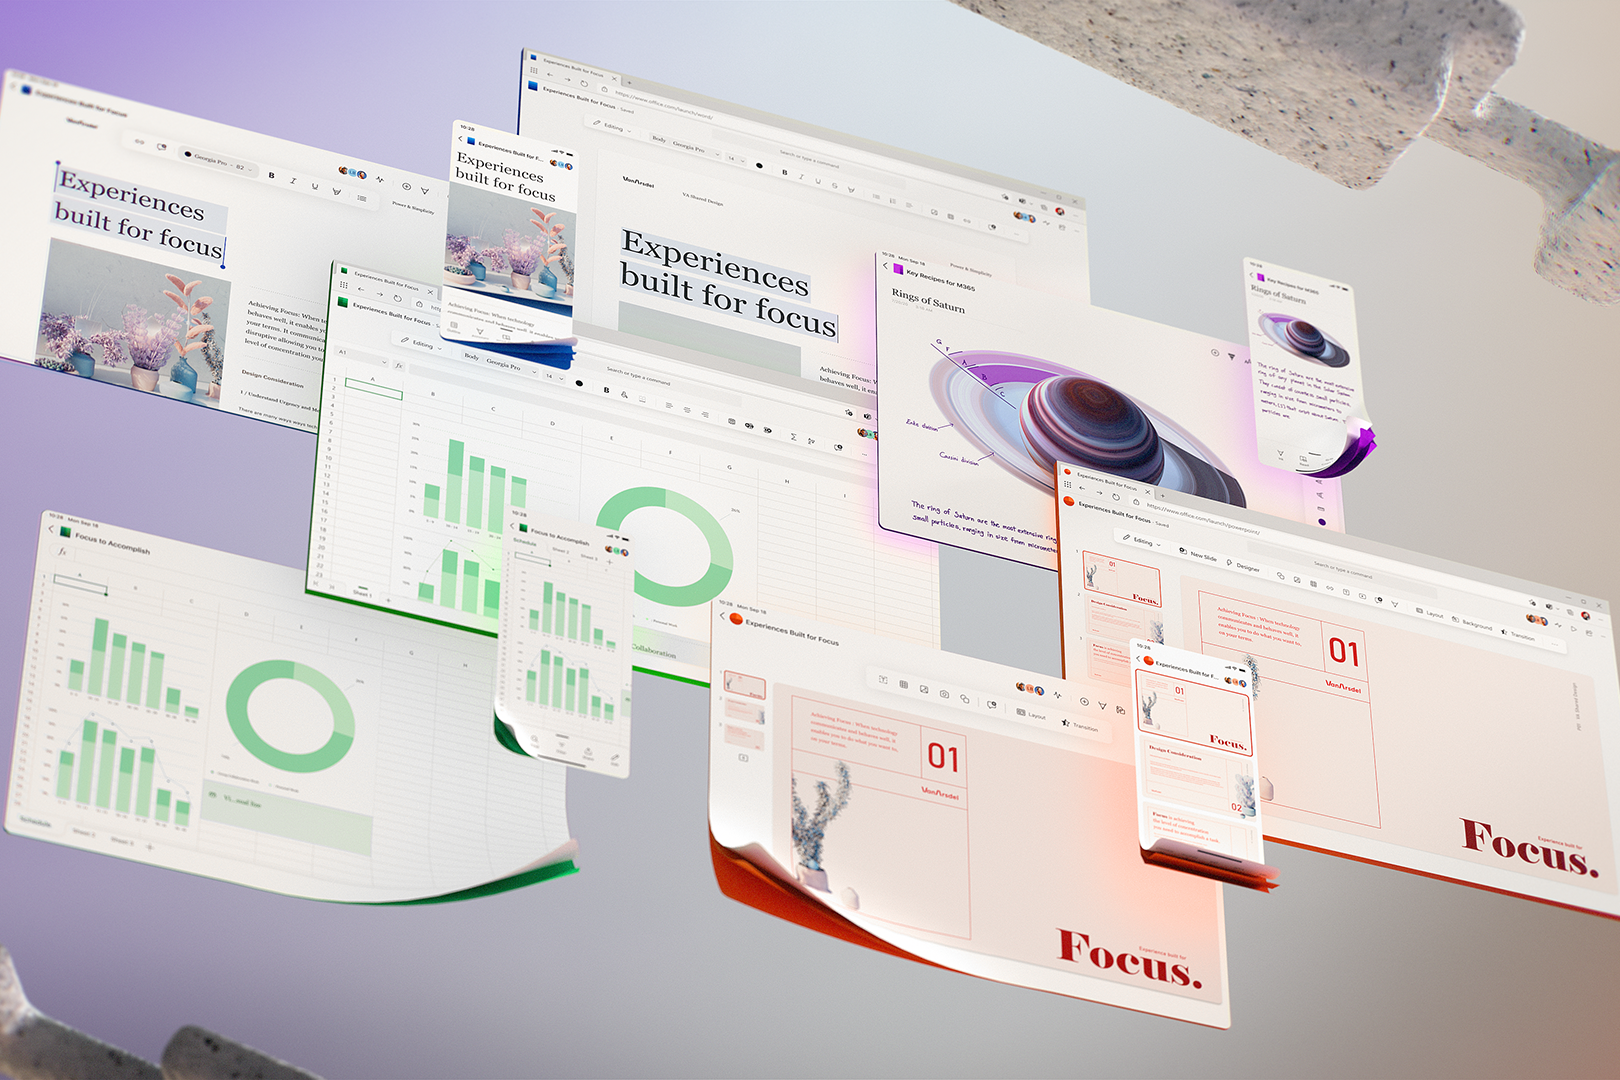 microsoft-office-nouvelle-interface